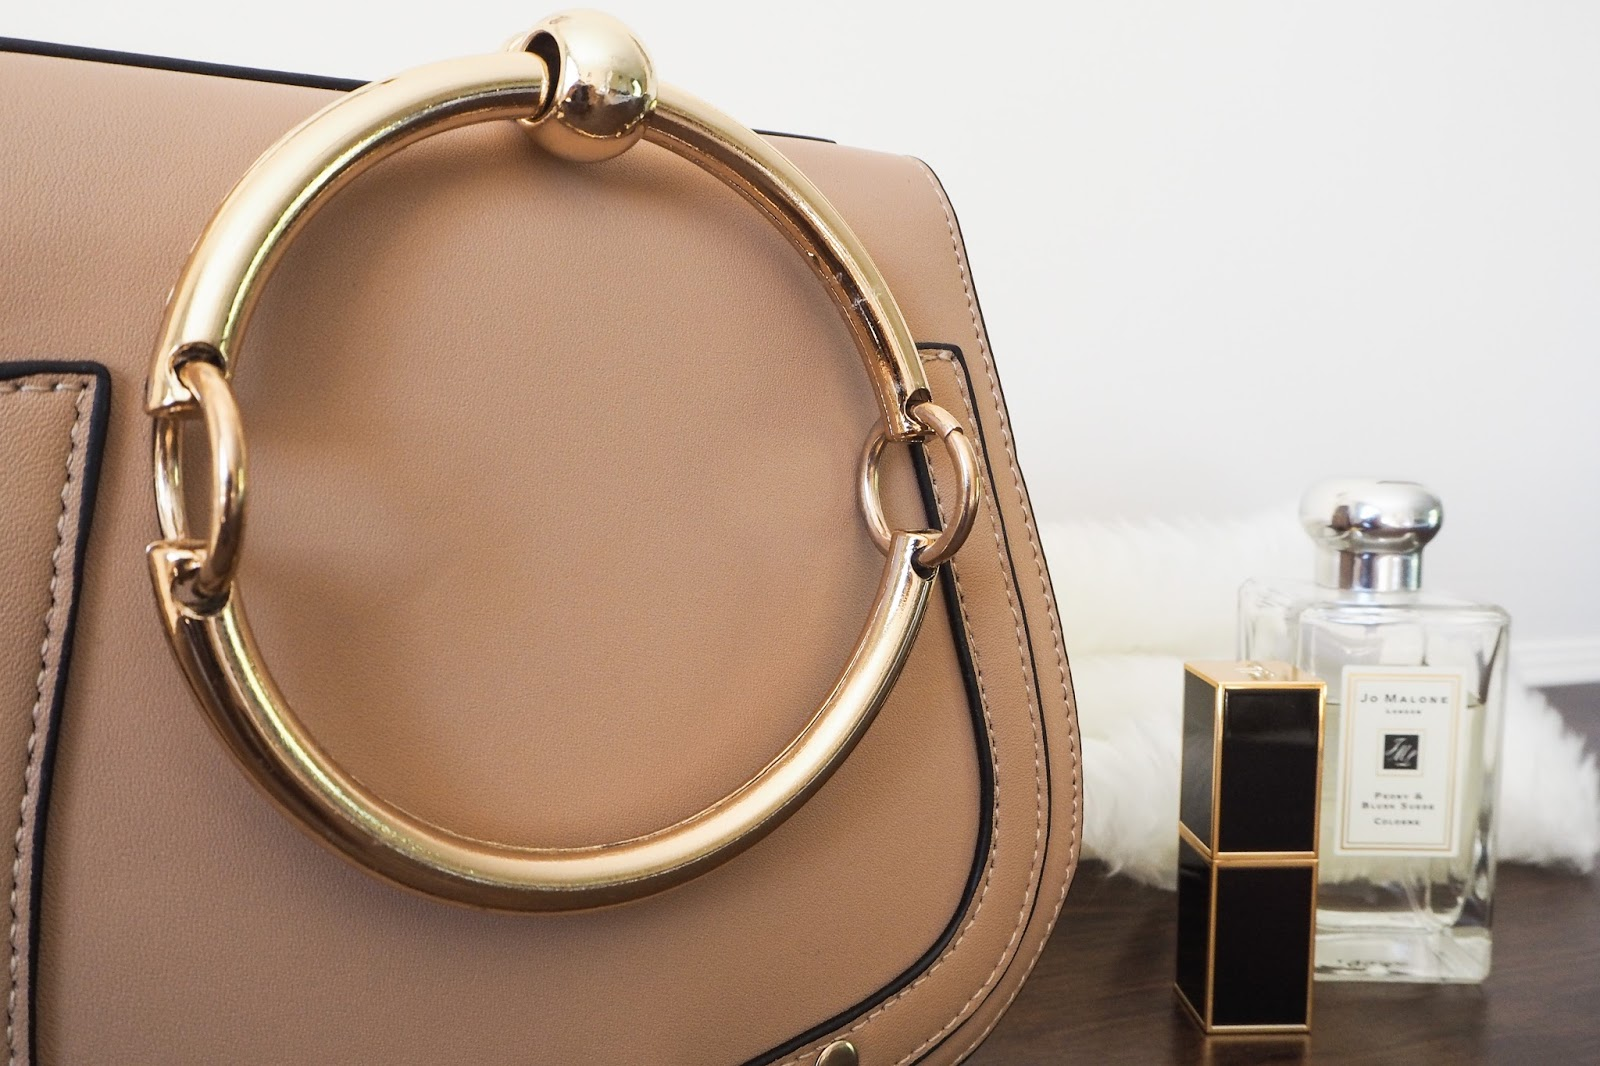 Close up of the gold hoop on the Chloe Nile dupe